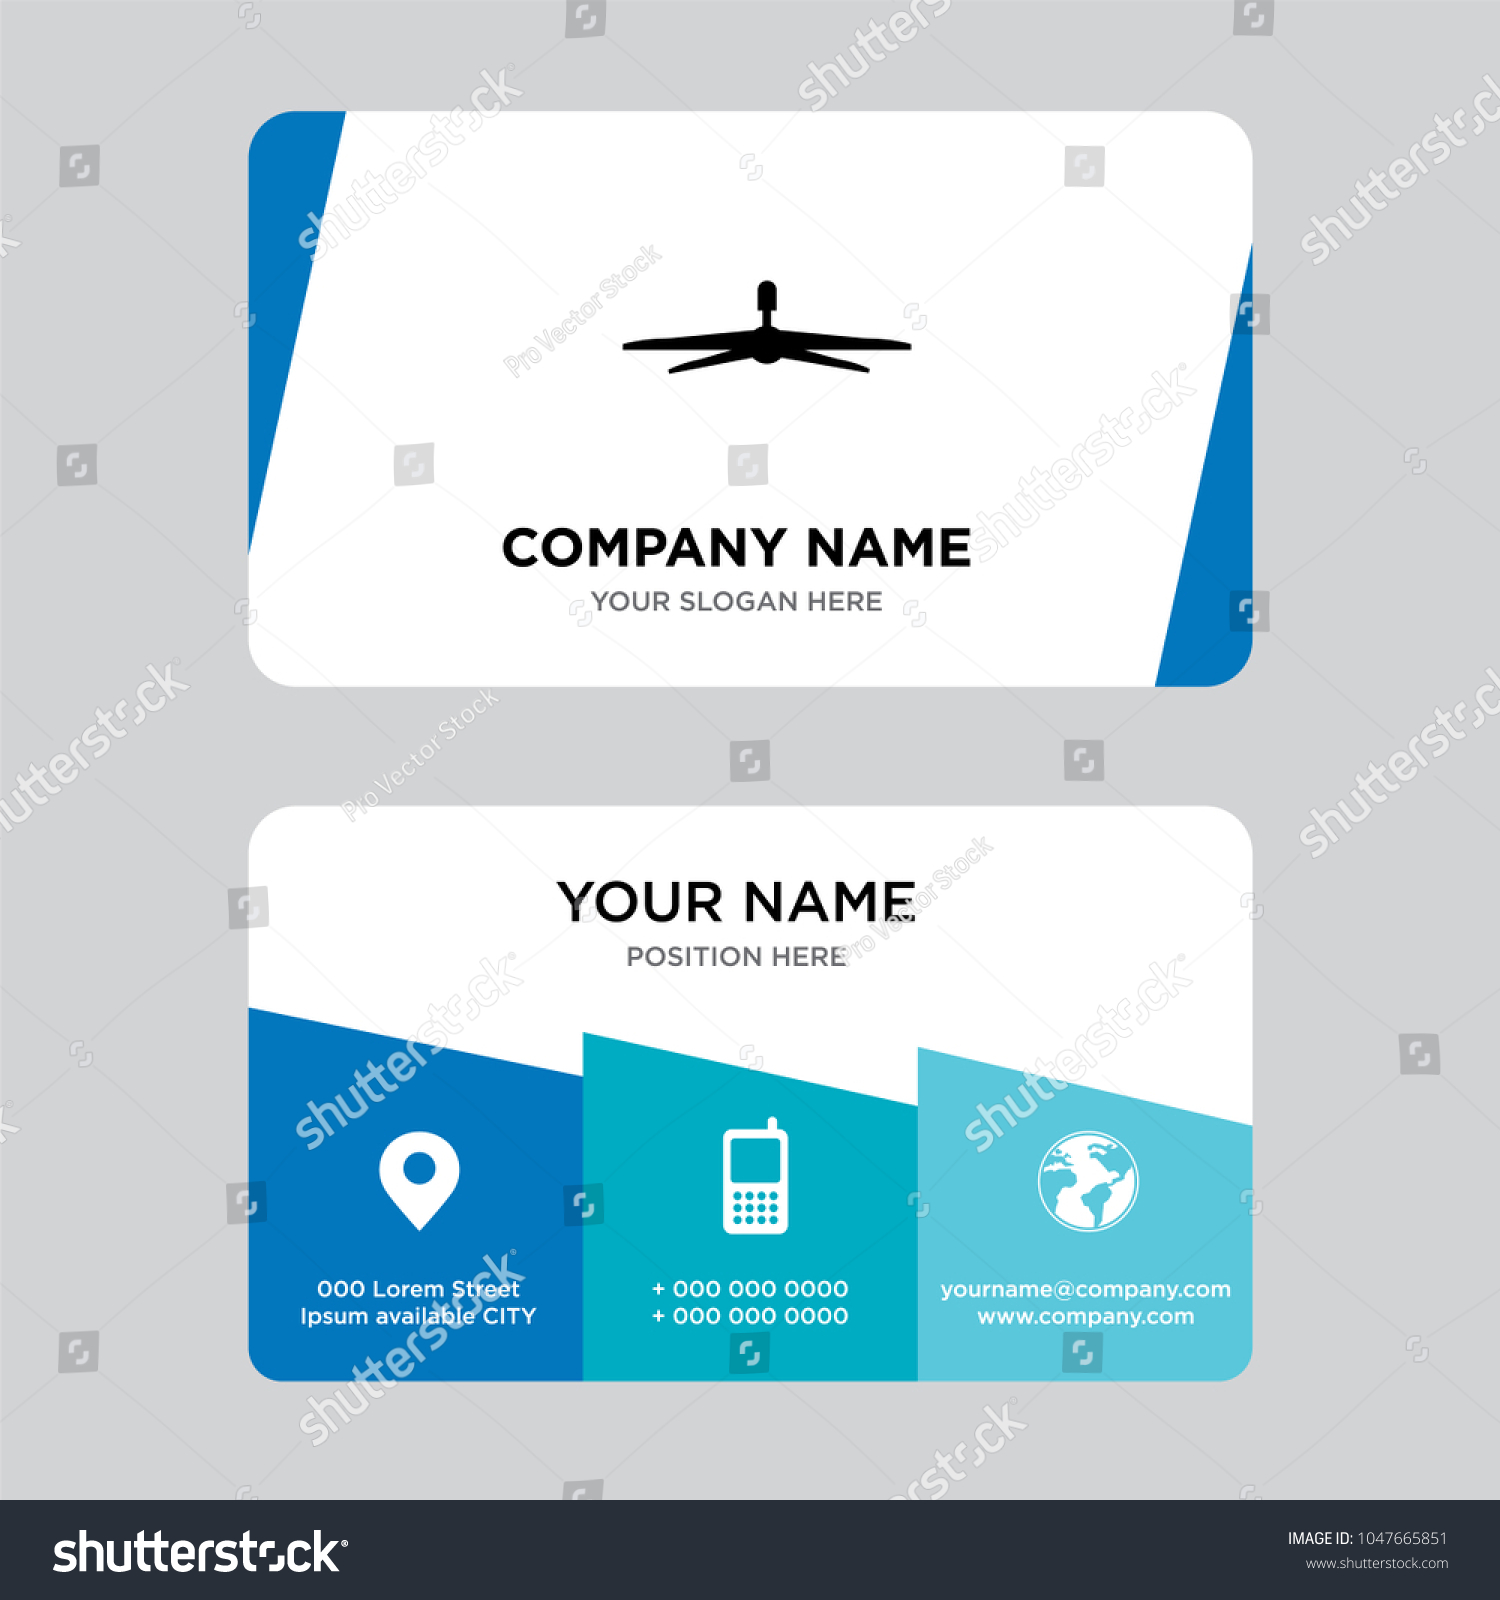 Ceiling Fan Business Card Design Template Stock Photo (Photo, Vector ...